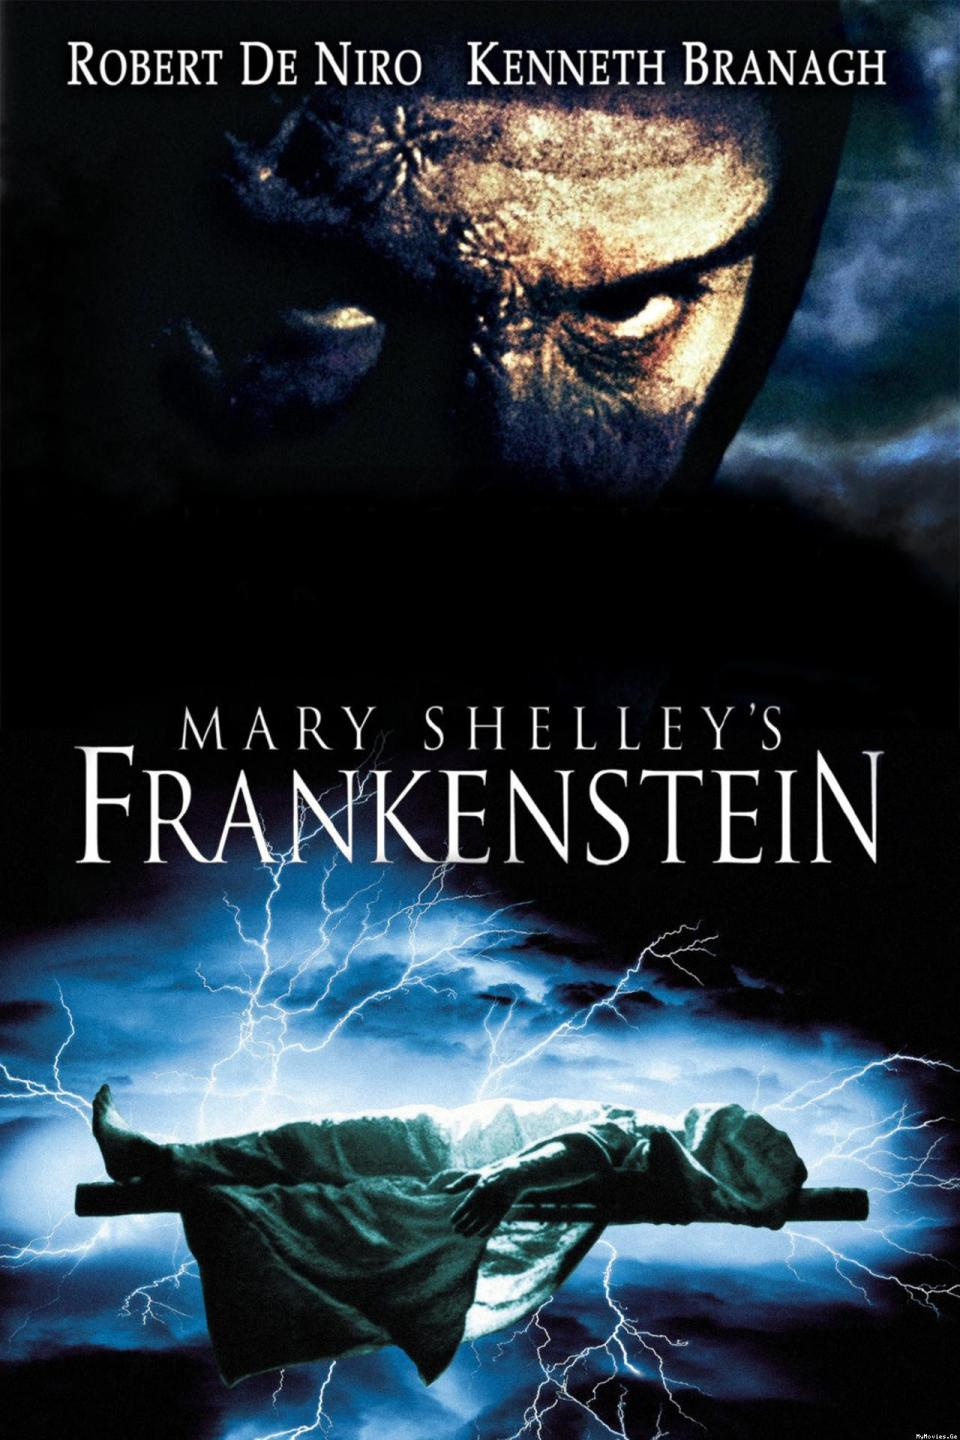 mary shelleys classic novel essay 【how does shelley create both horror and sympathy for the creature in her novel frankenstein essay 】 from best writers of artscolumbia largest assortment of free essays find what you need here.